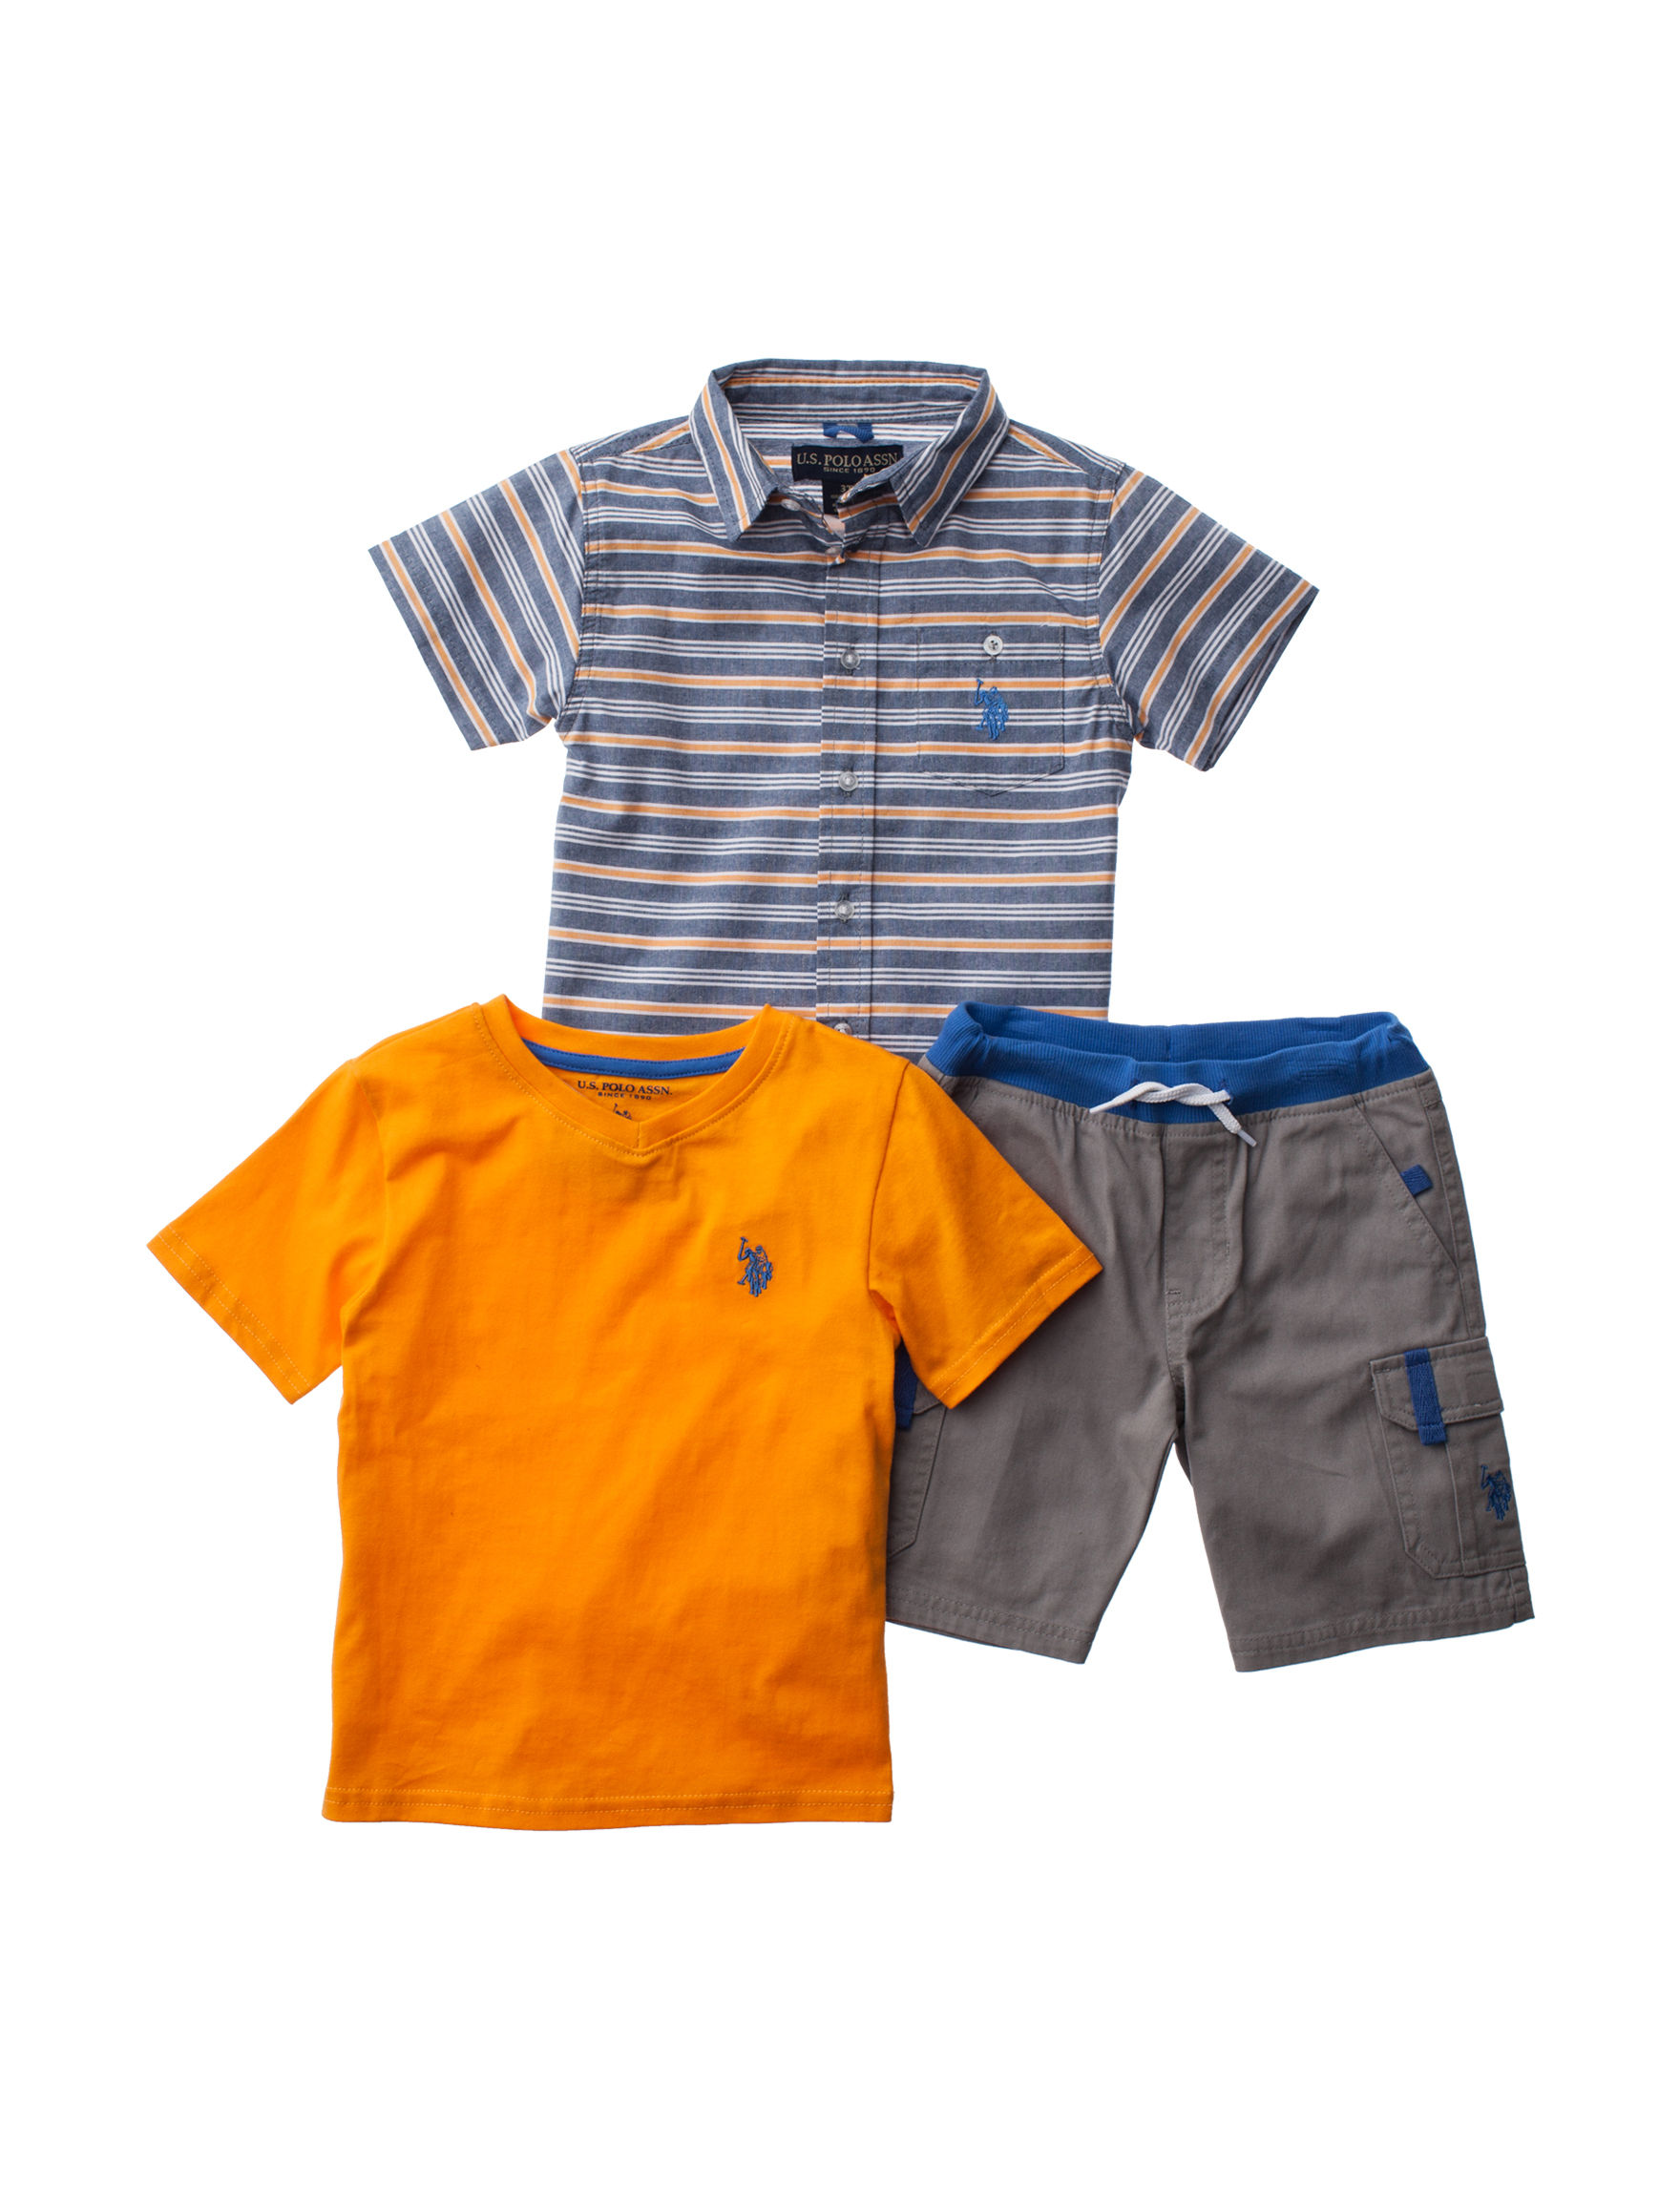 U.S. Polo Assn. Orange Multi